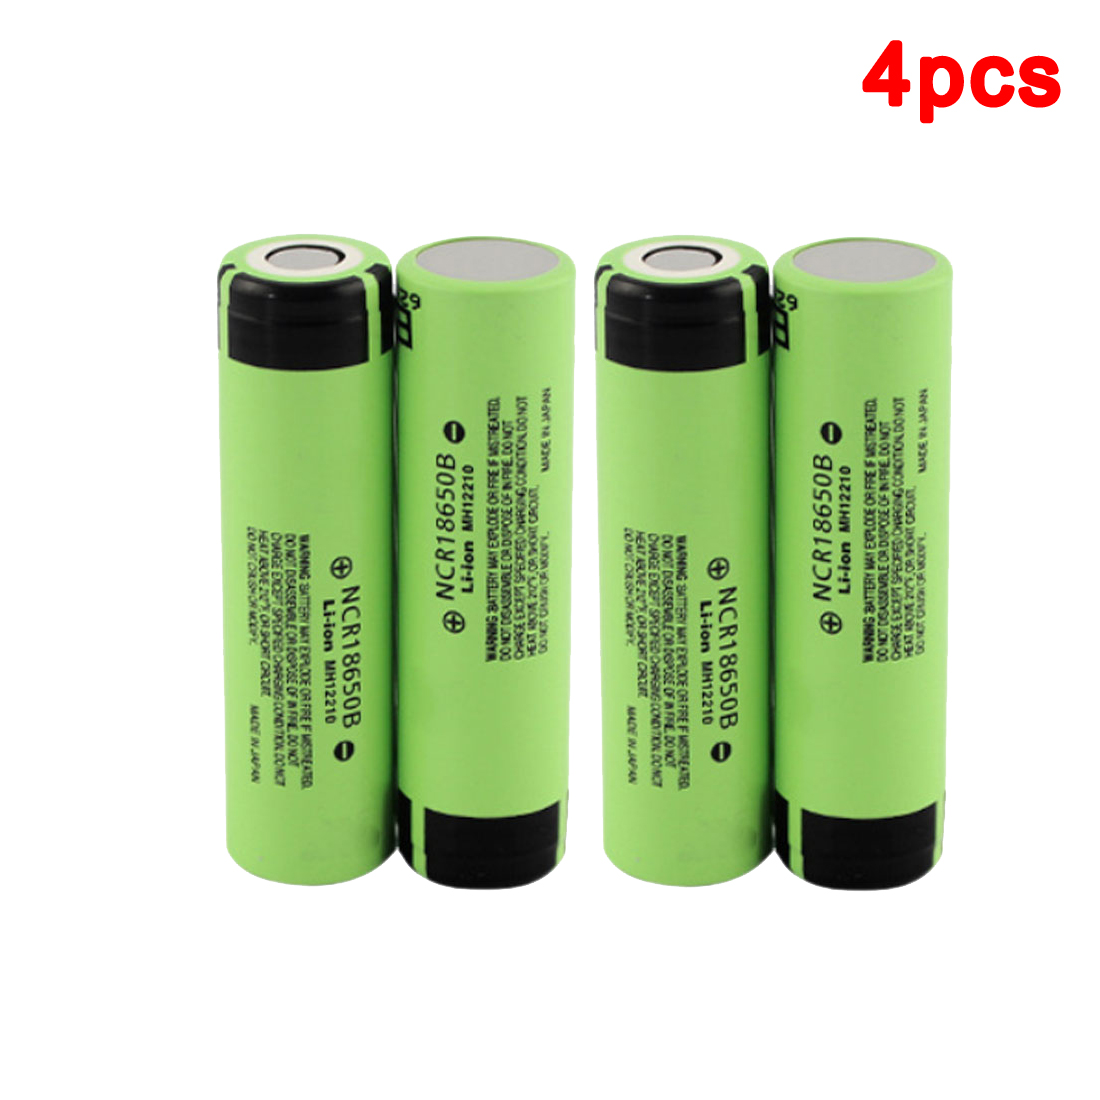 centechia 4PCS 3.7V NCR 18650B 3400mAh Rechargeable Batteries For Panasonic <font><b>18650</b></font> Battery/Power Bank/Portable Charger/Light image